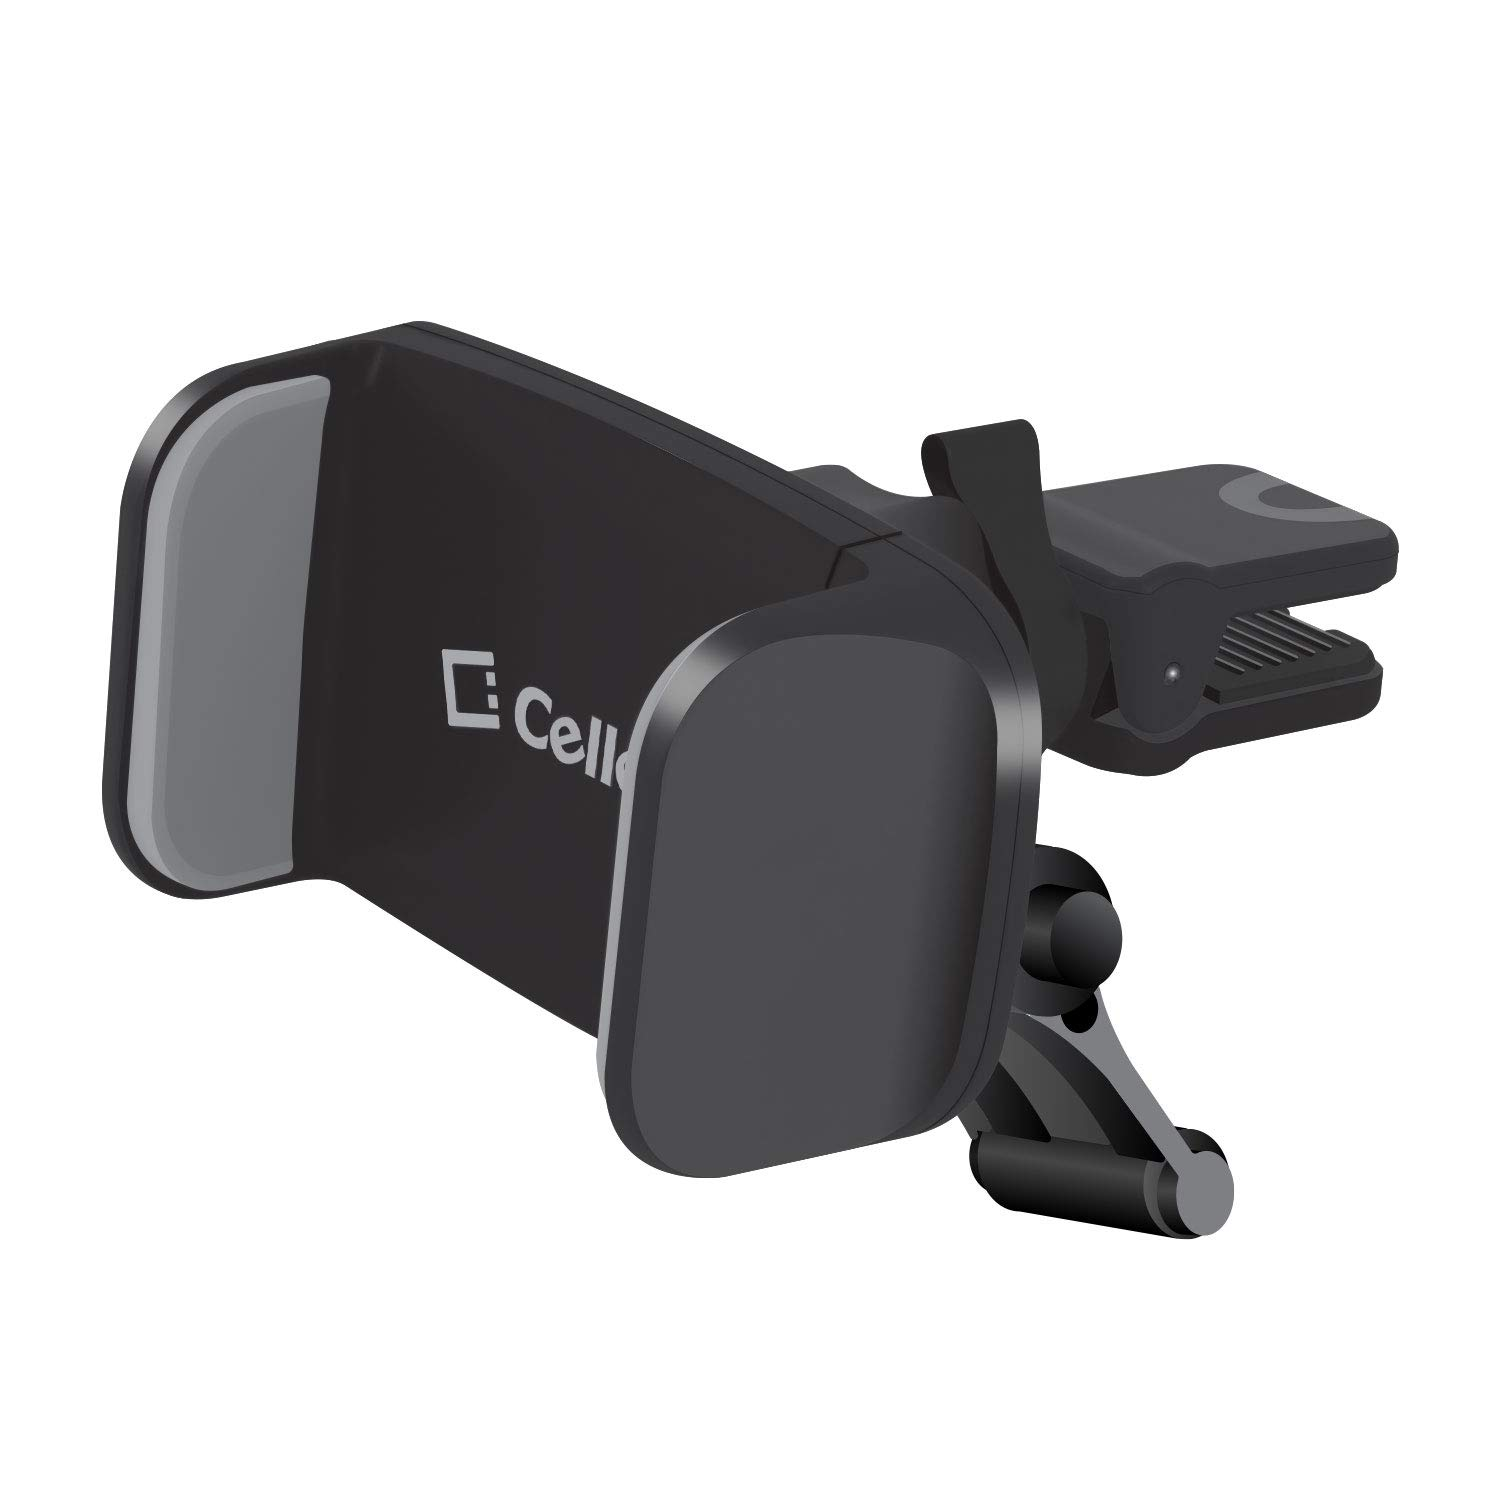 Cellet Air-Vent Phone Holder Mount Compatible with iPhone 11 Pro Max, 11 Pro, 11, Galaxy S20 Ultra 5G, S20 Plus 5G, S20 5G, Note 10 Plus, 10, 9, 8, Supporting Kick-Stand Stabilizer Included